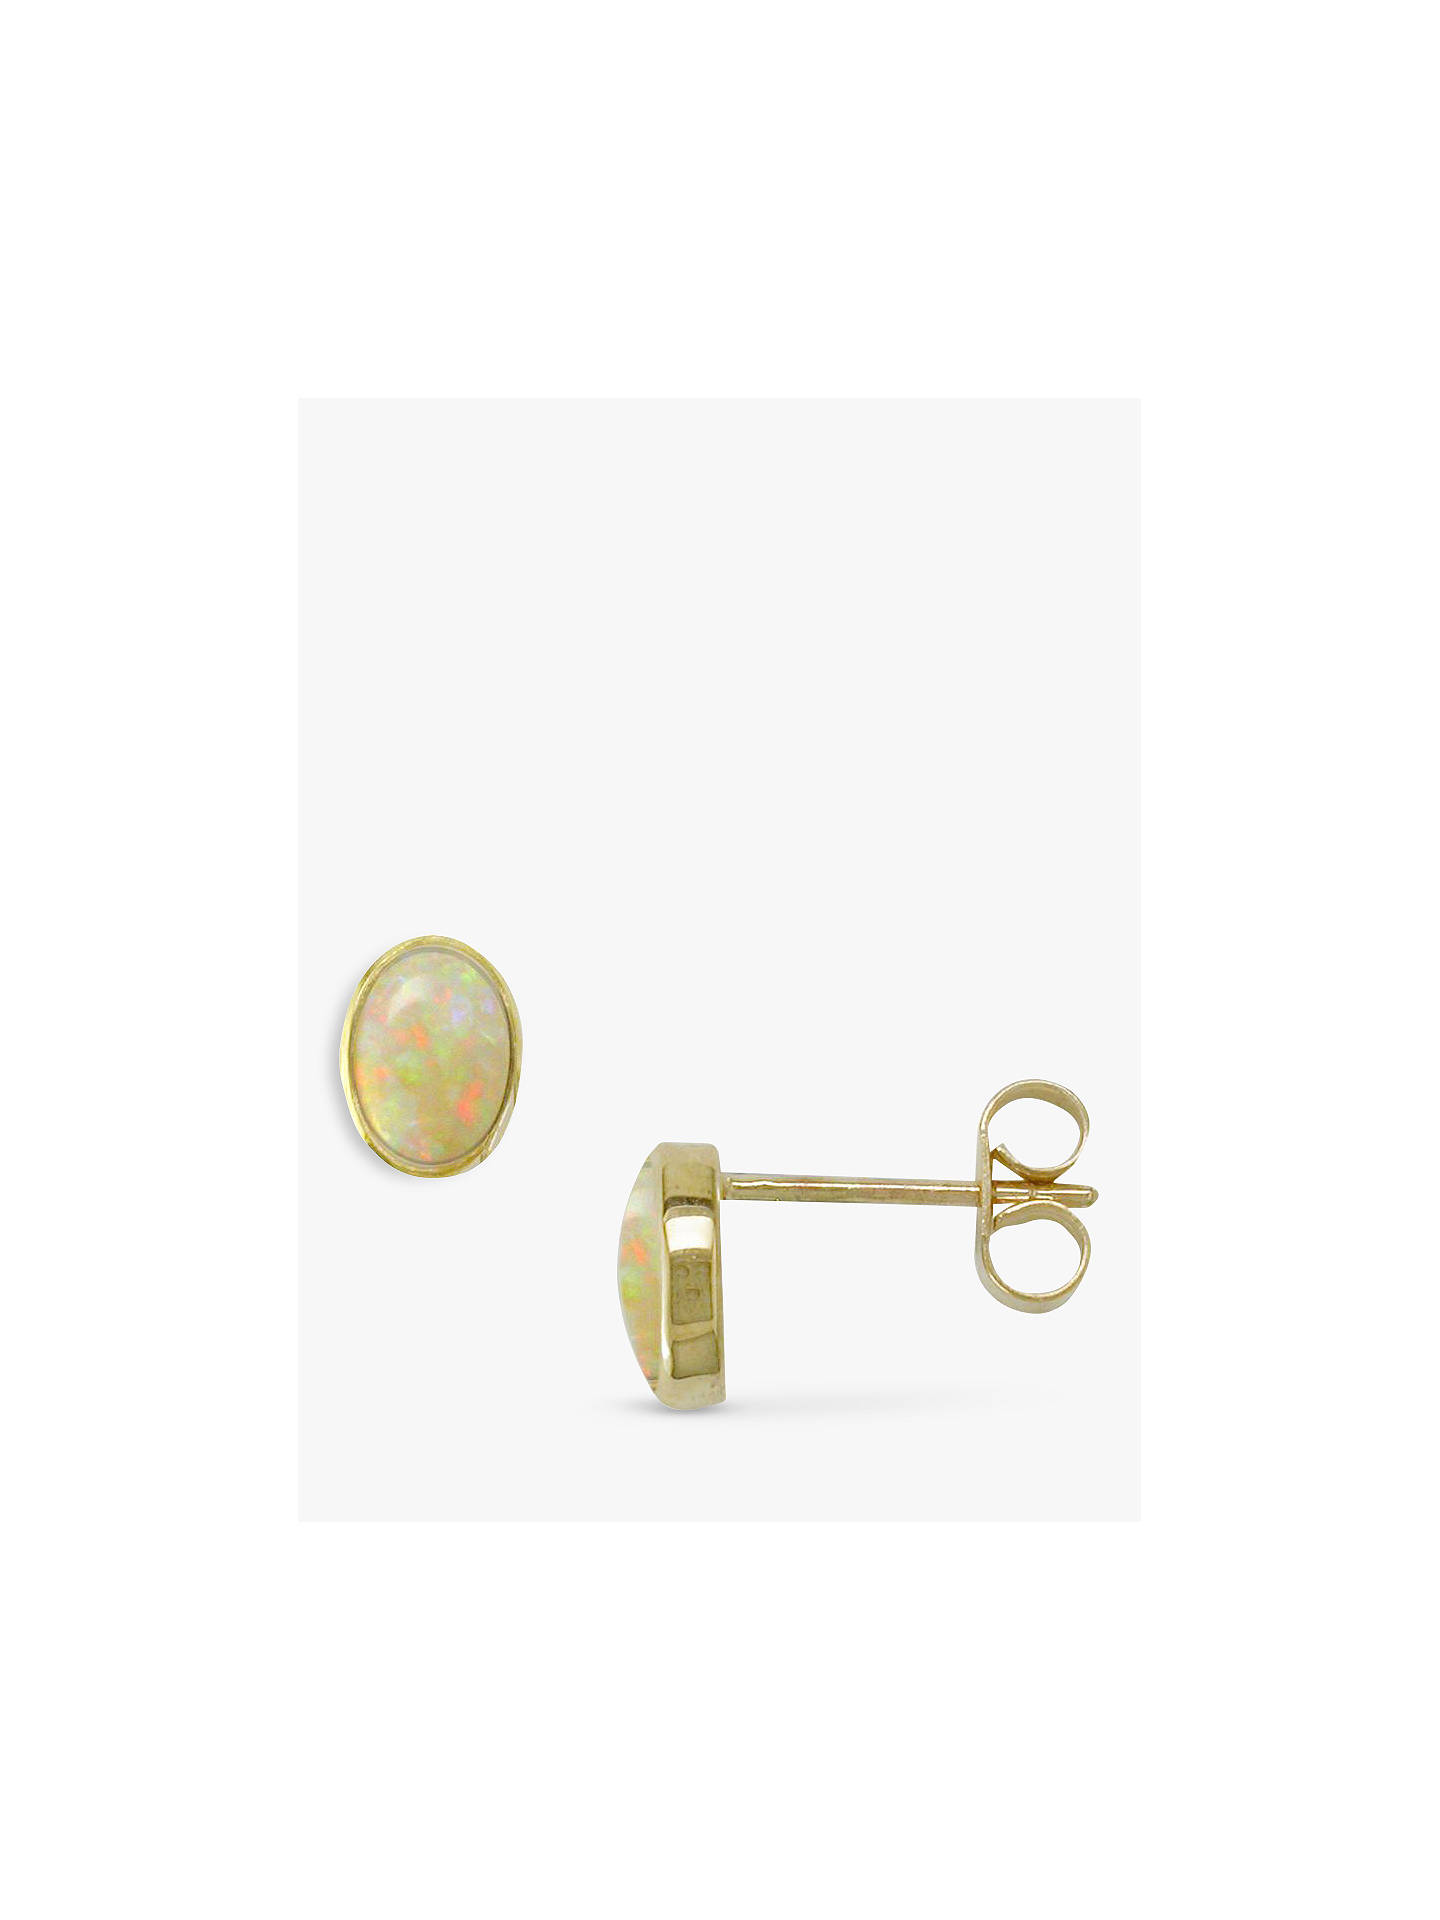 Buy E.W Adams 9ct Gold Oval Stud Earrings, Oval Online at johnlewis.com